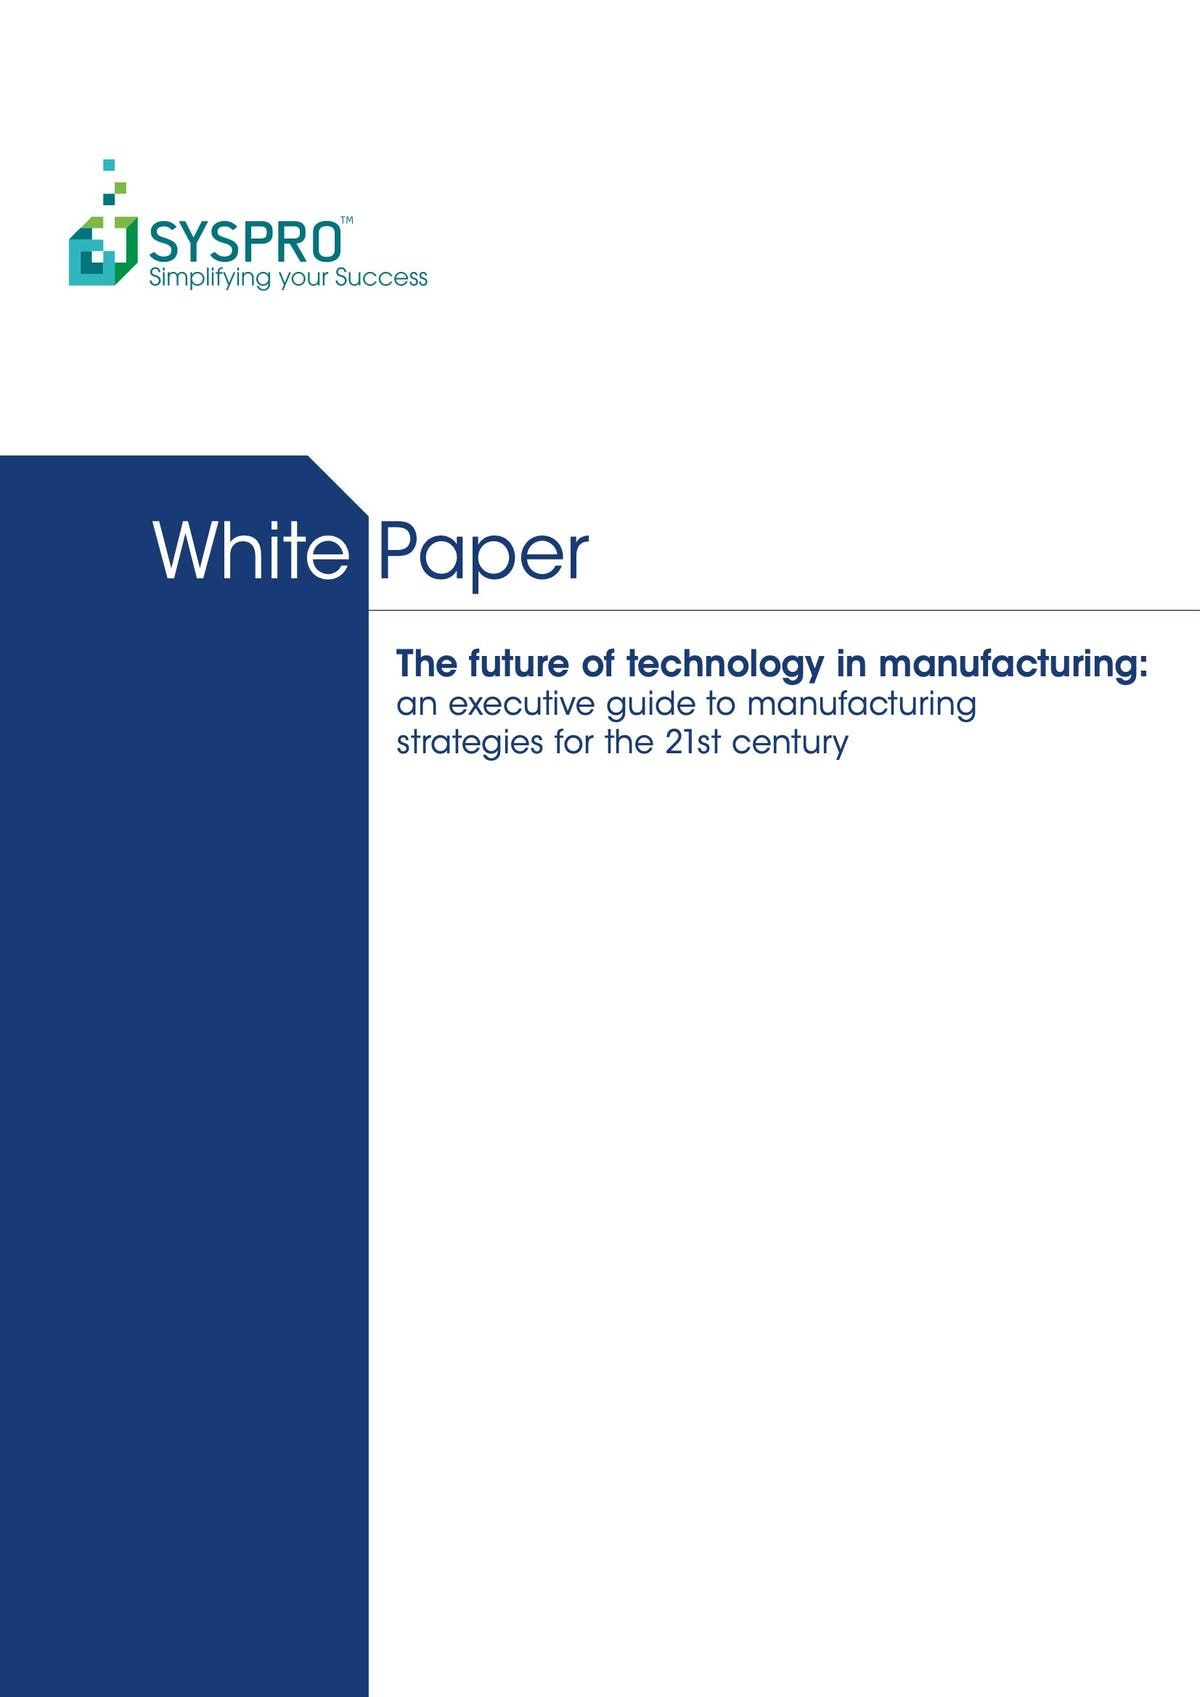 SYSPRO White Paper - The Future of Technology in Manufacturing